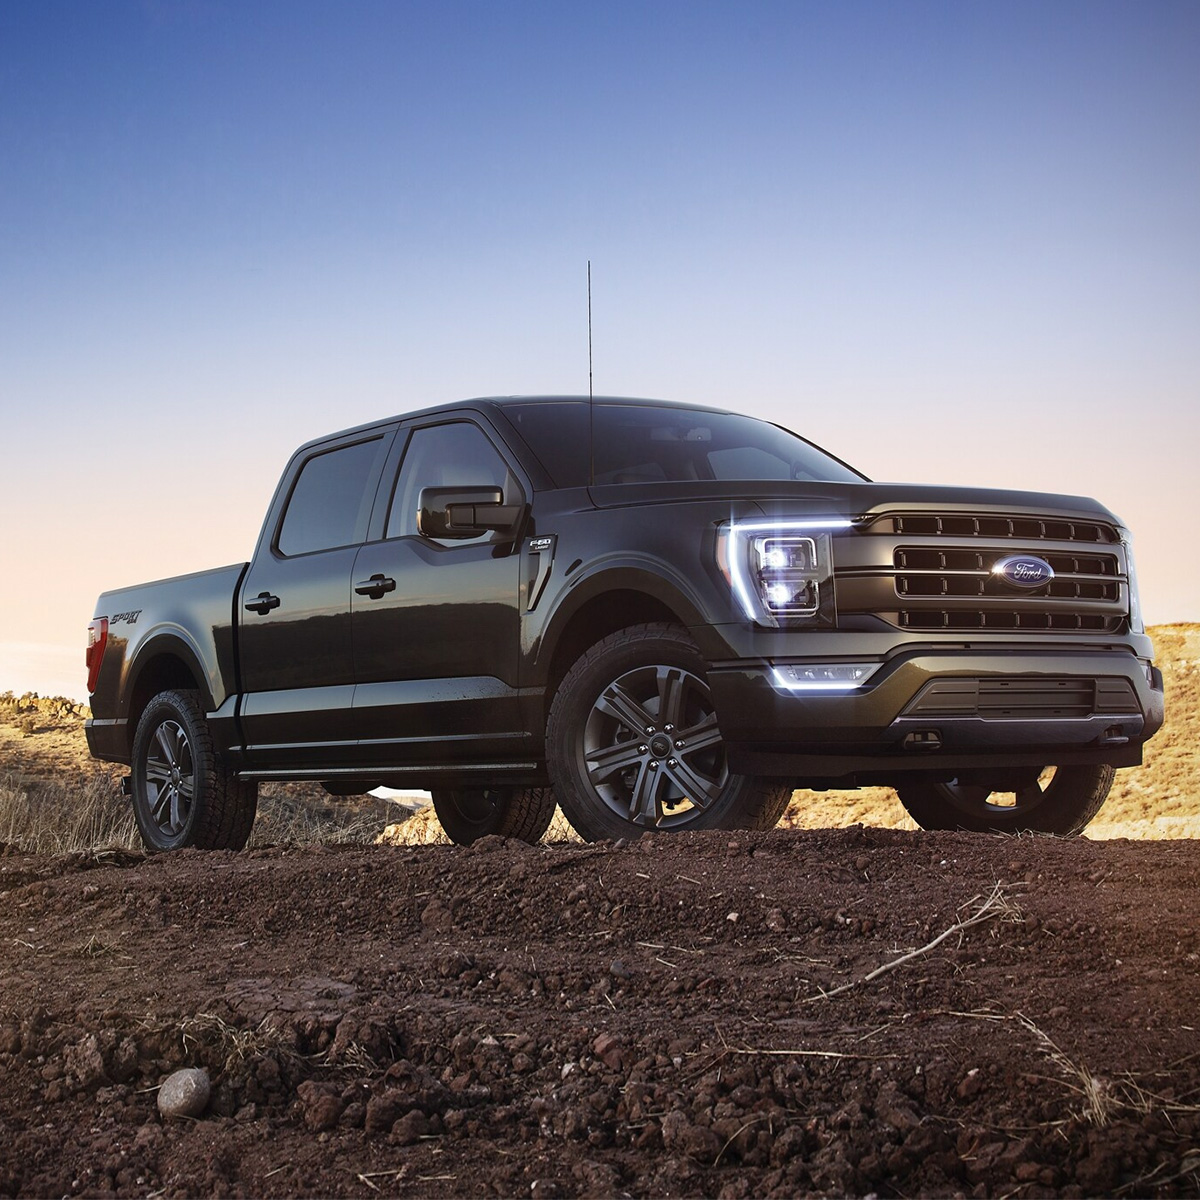 Black 2021 Ford F-150 parked on a dirt near a construction zone